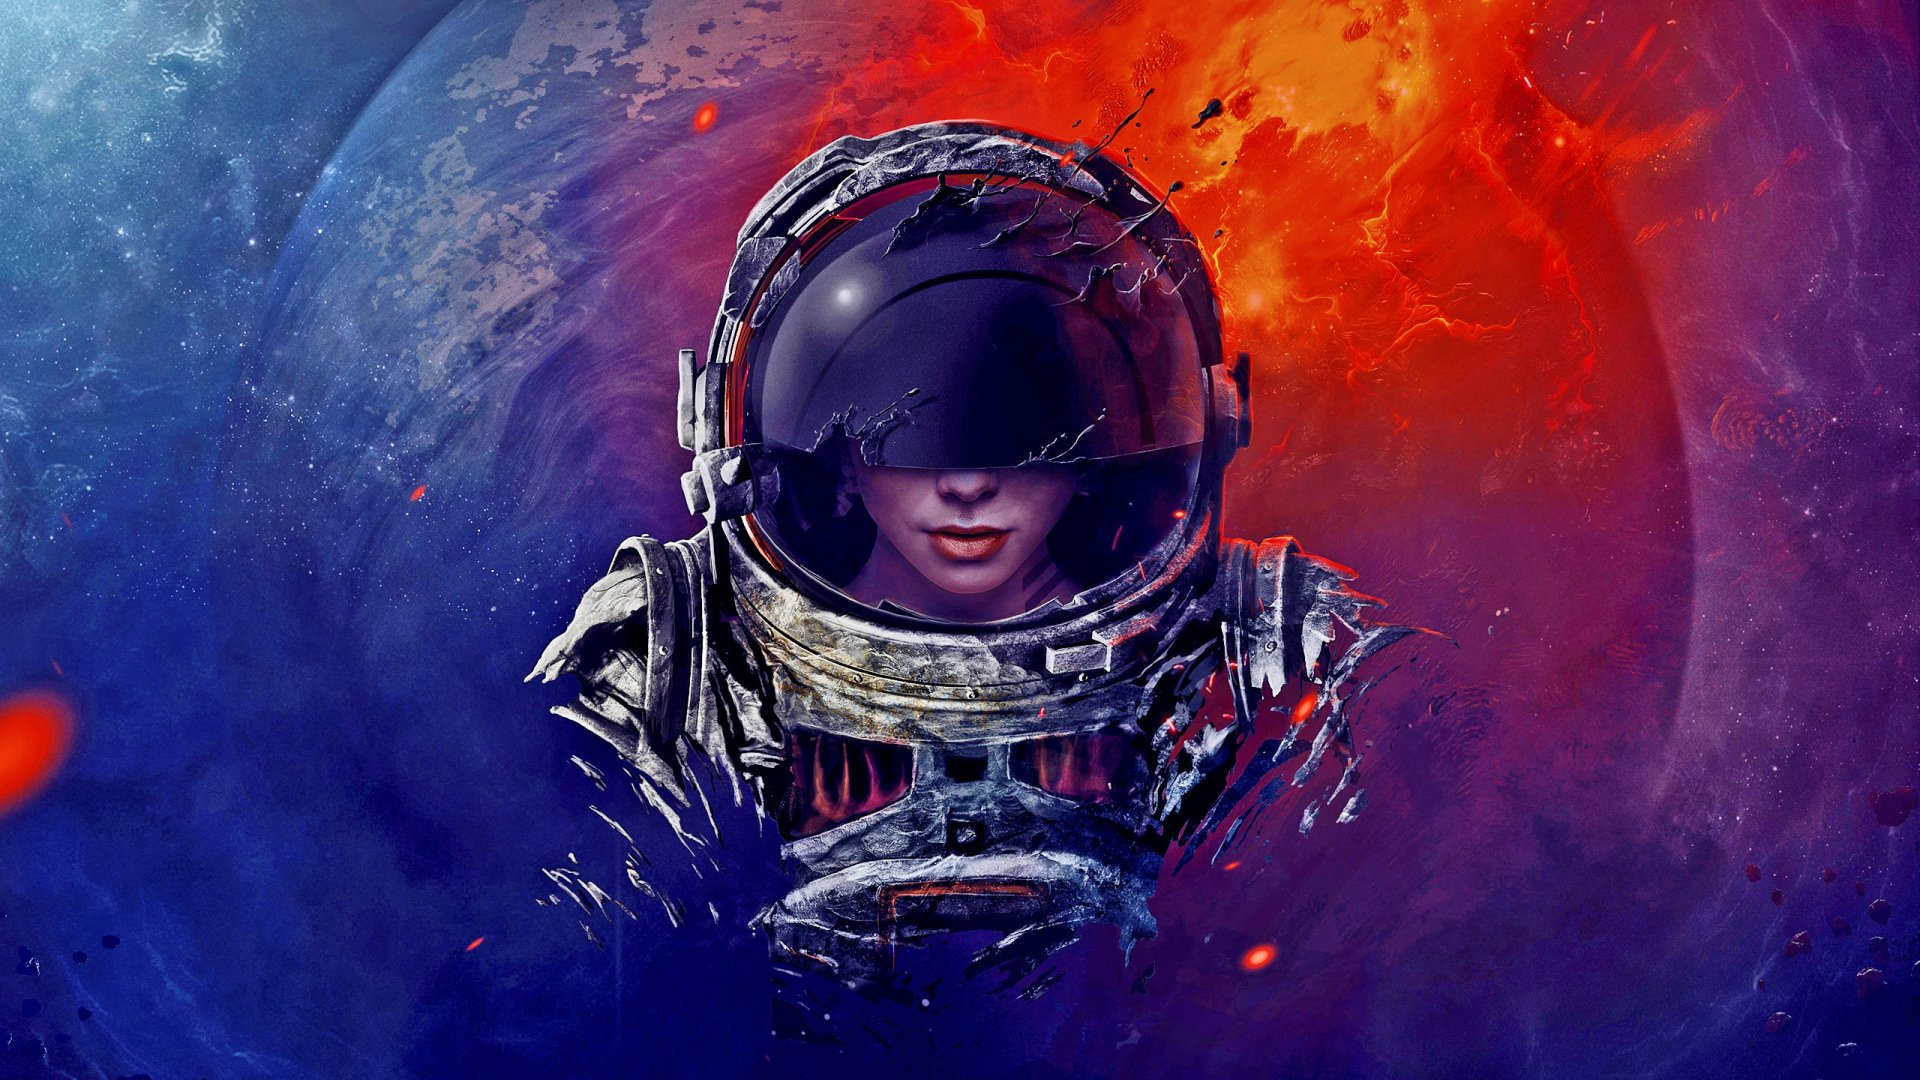 Sci Fi - Astronaut  Artistic Sci Fi Planet Woman Wallpaper